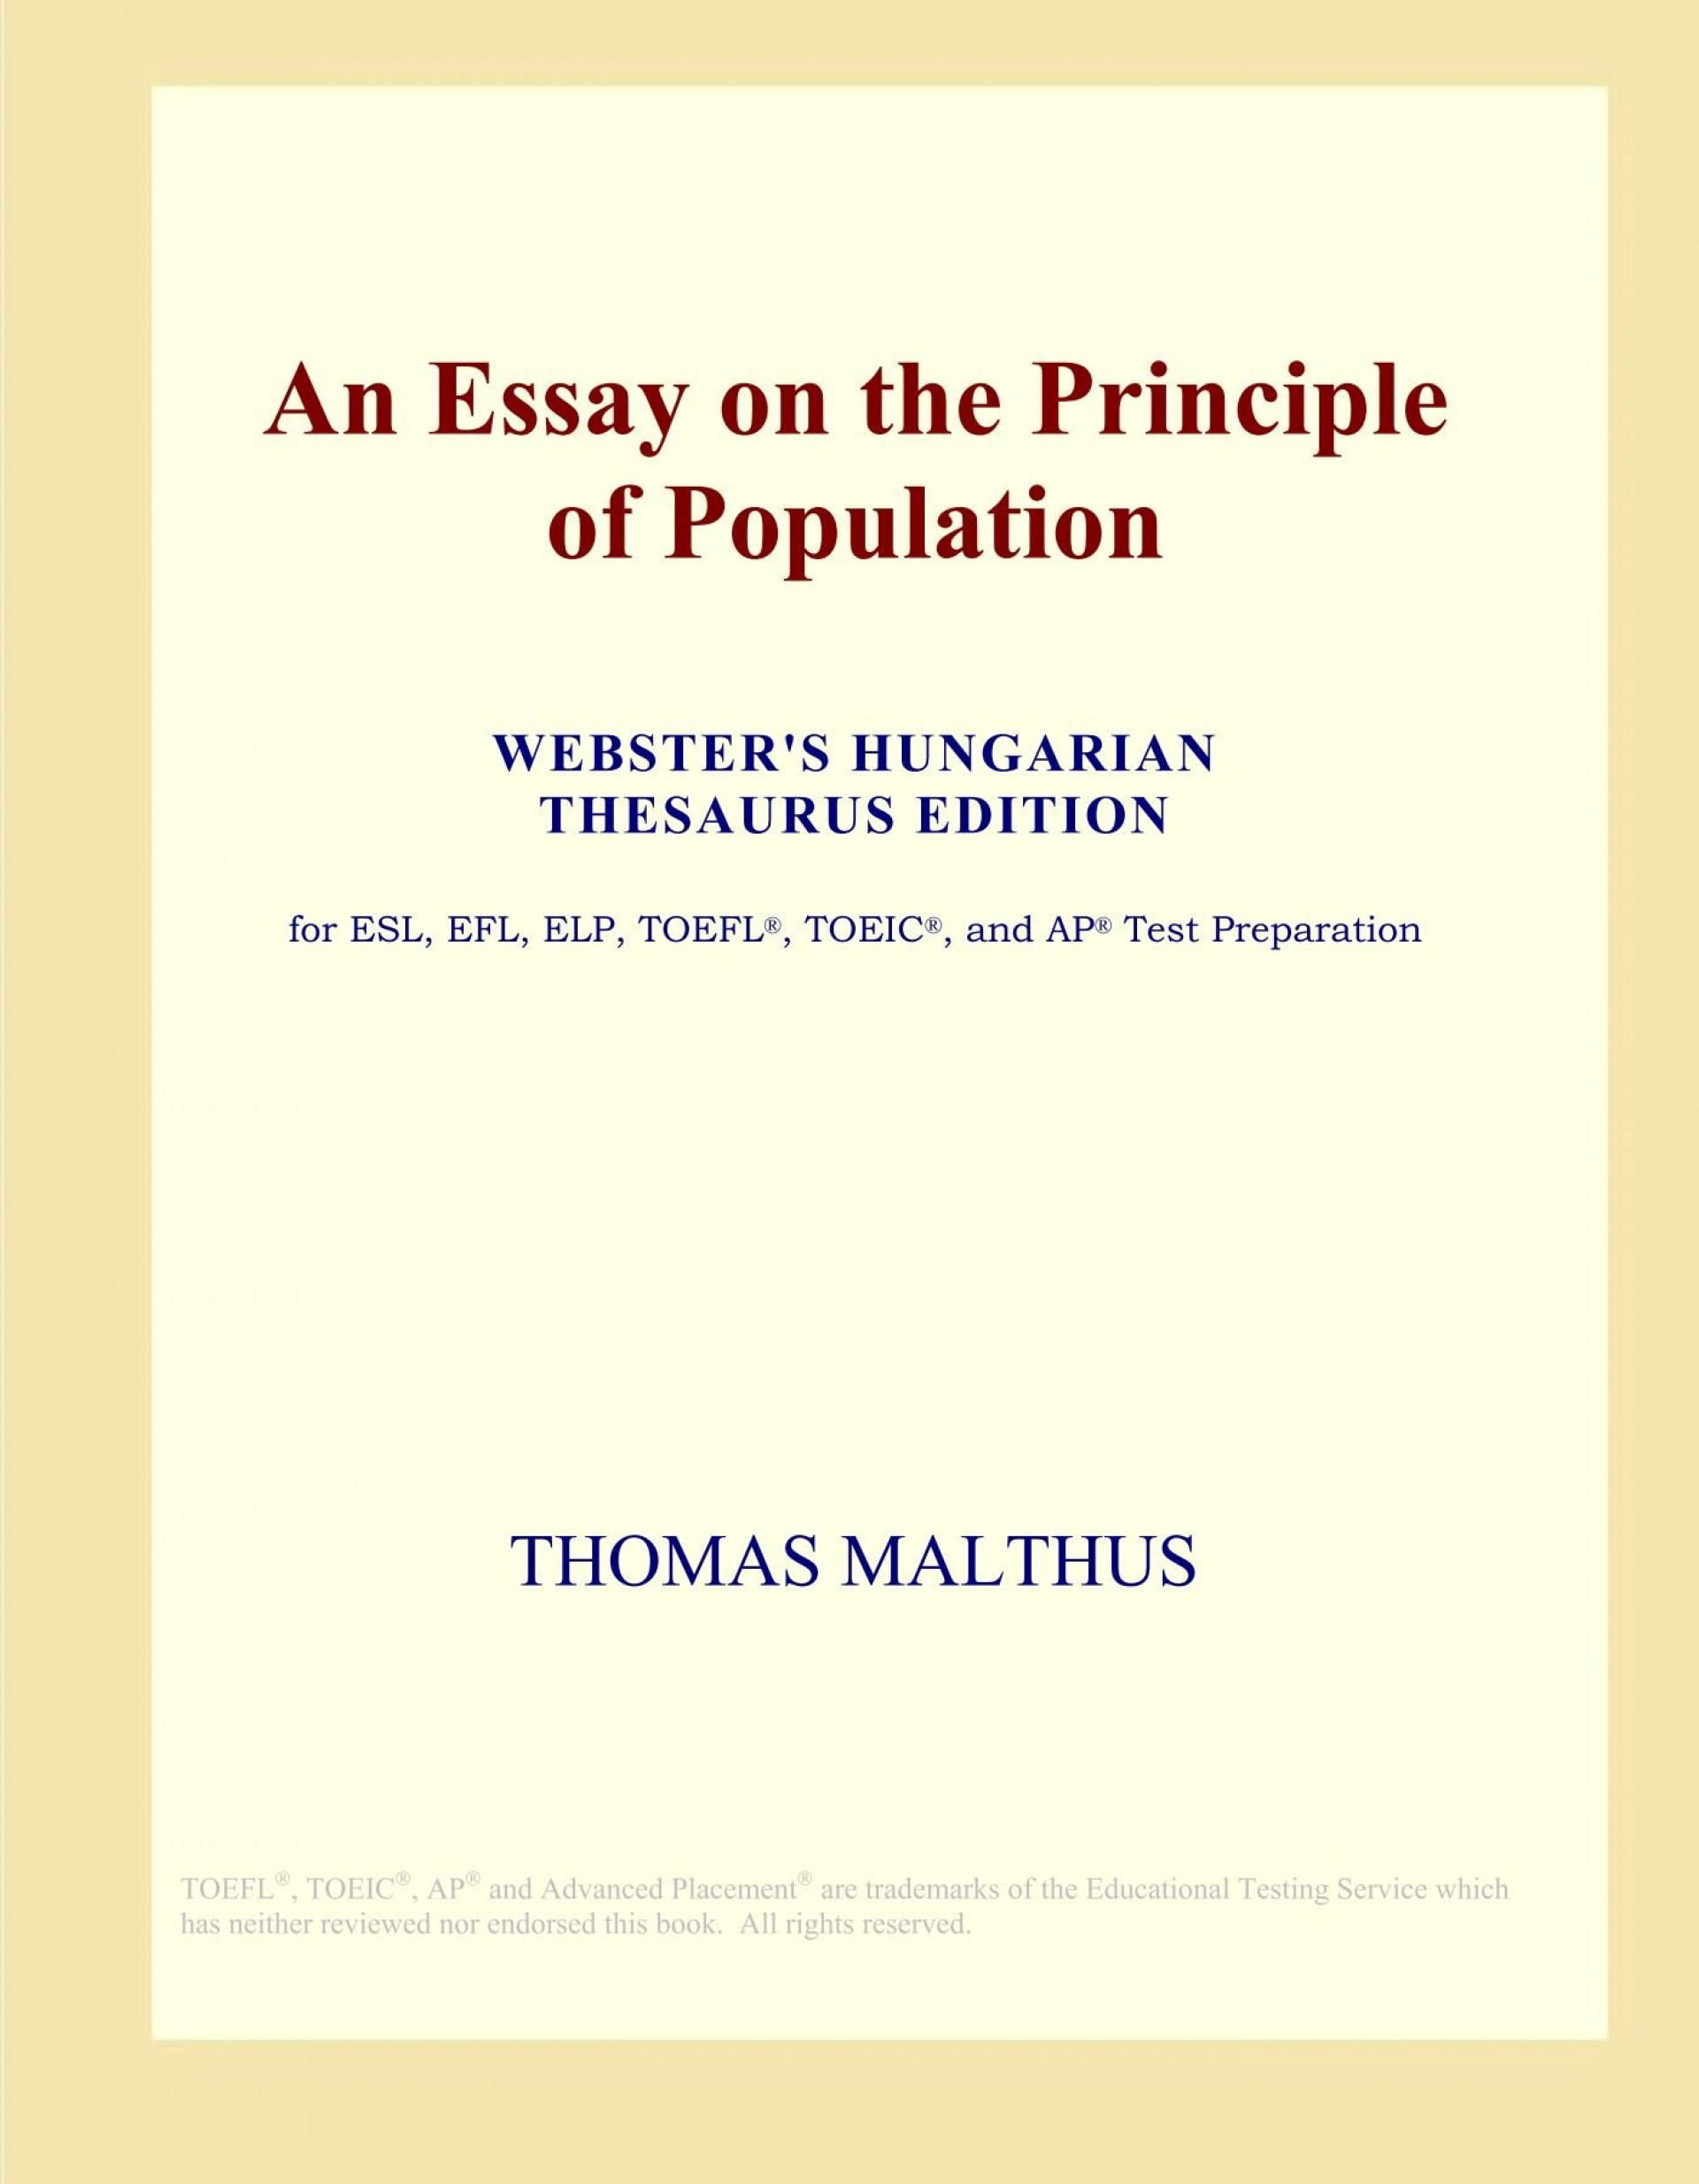 006 717hprqxqul An Essay On The Principle Of Population Fascinating By Thomas Malthus Pdf In Concluded Which Following 1920